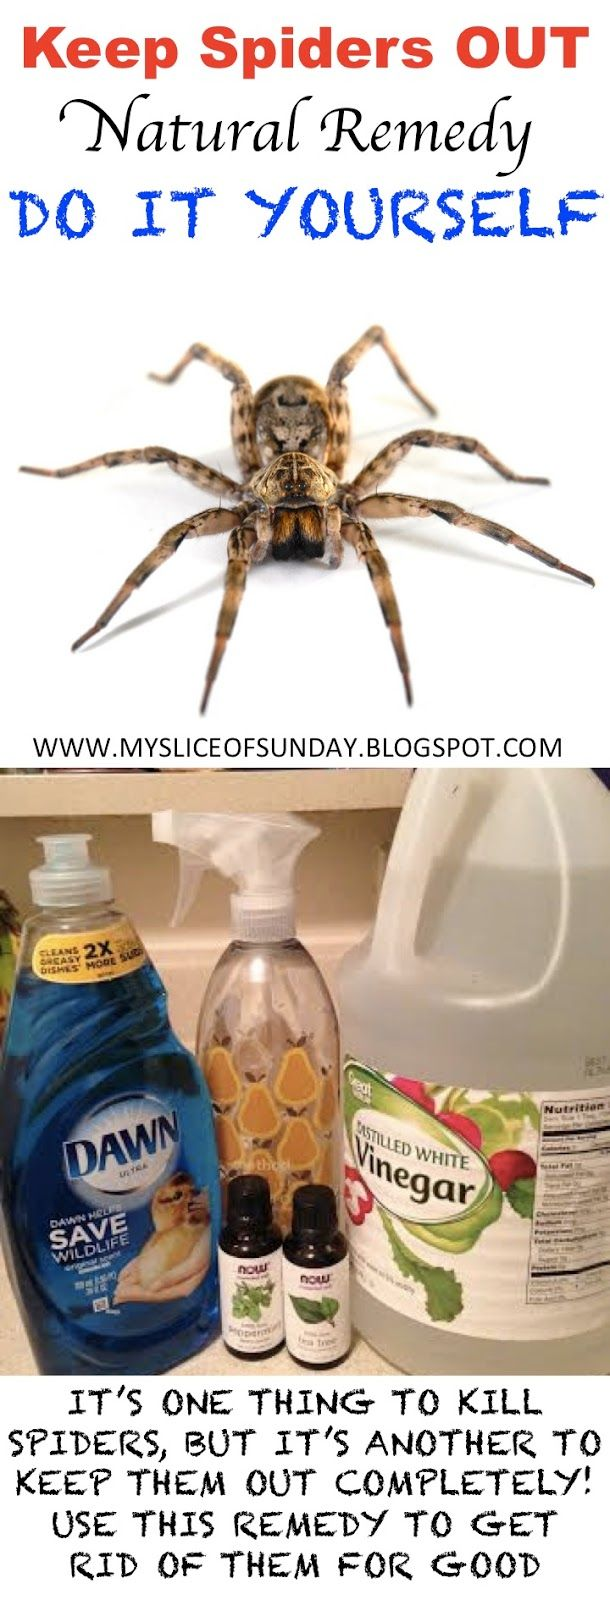 DIY SPIDER KILLER - Natural Remedy to keep spiders out of your home for good !!